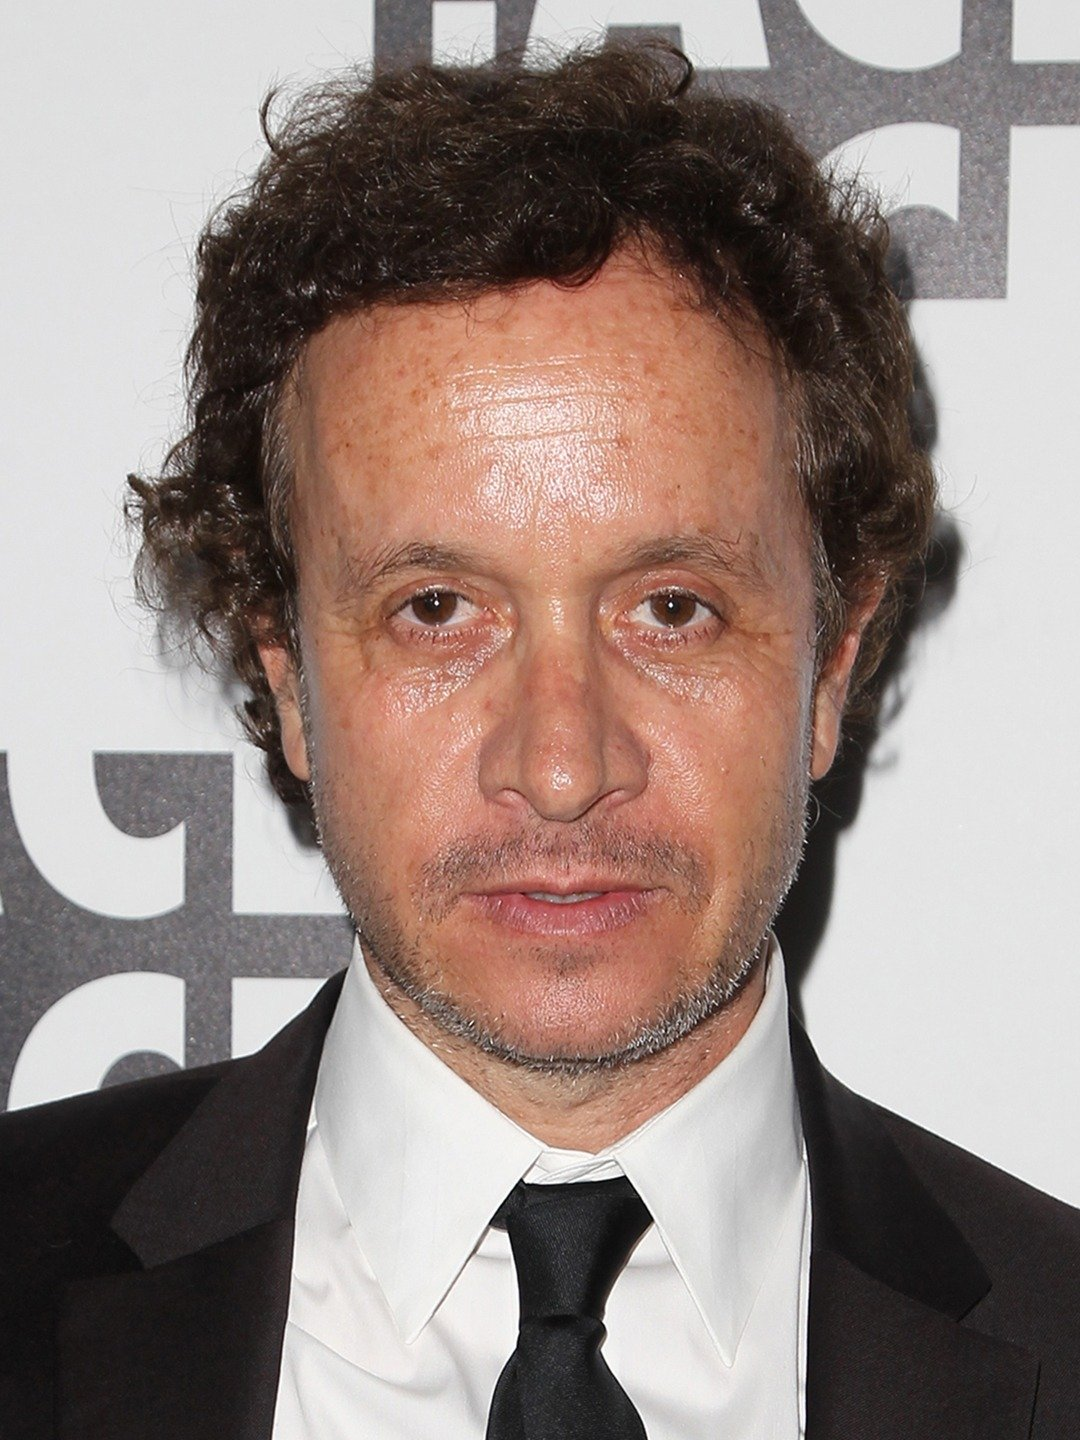 Pauly Shore attending an event all dressed up in white shirt, black tie and suit